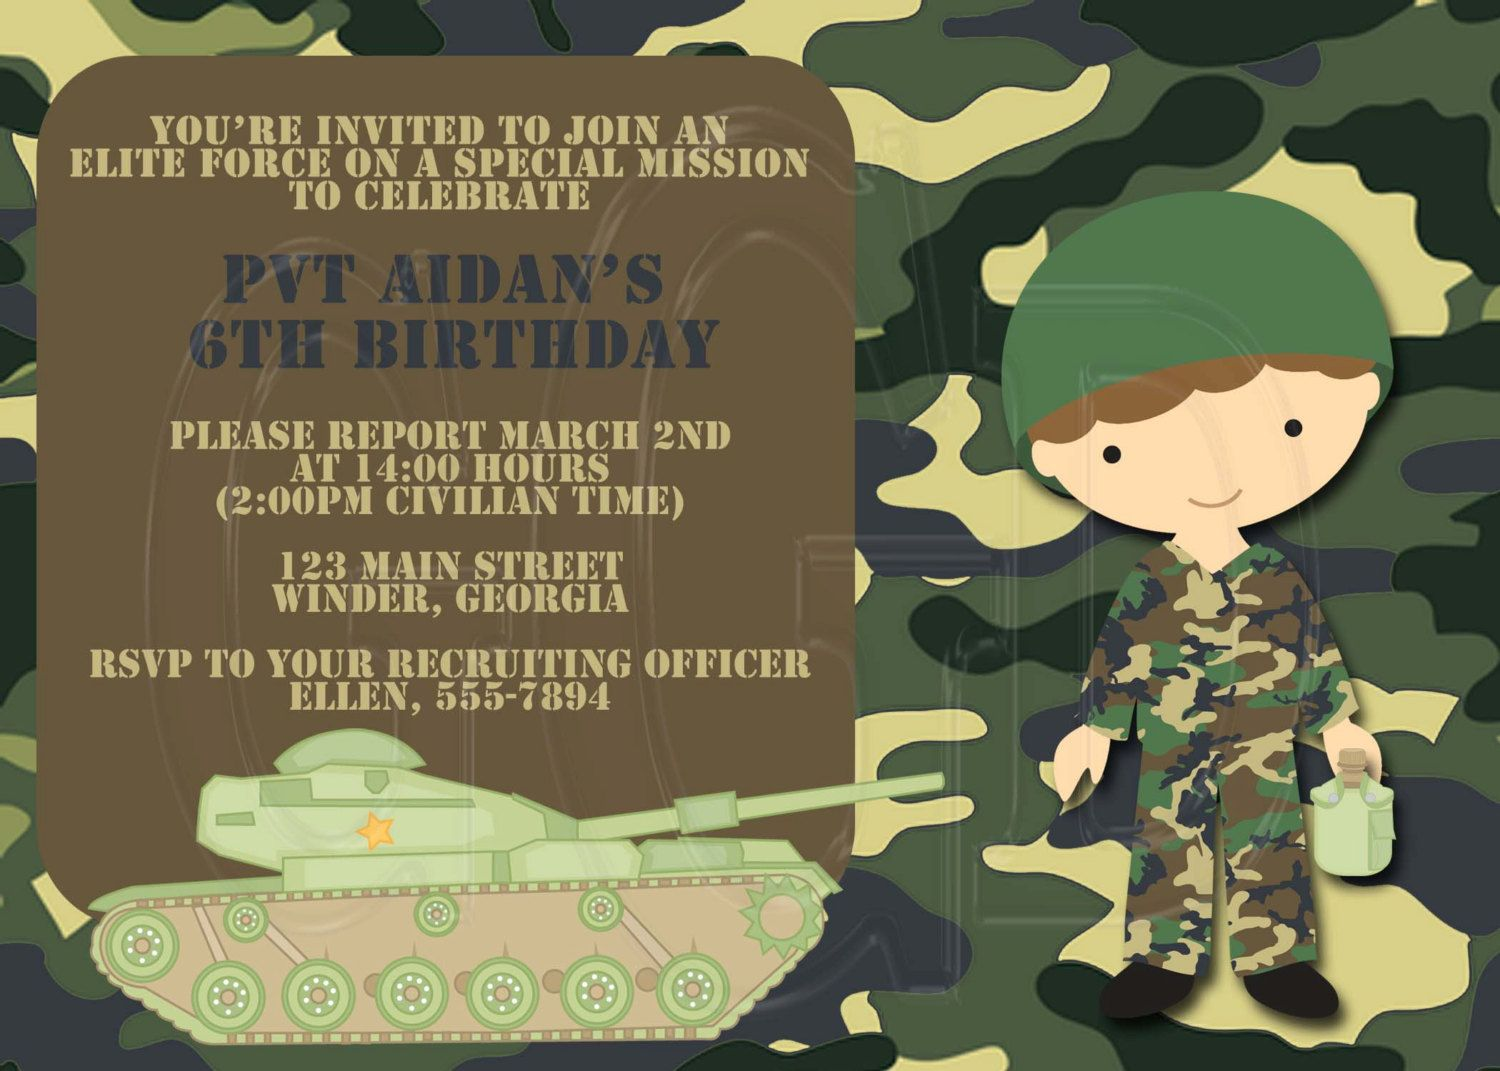 9f84371c028182ceaa6f3ef22f5f21dc like verbiage bootcamp bday bash pinterest best birthday,Military Invitation Template